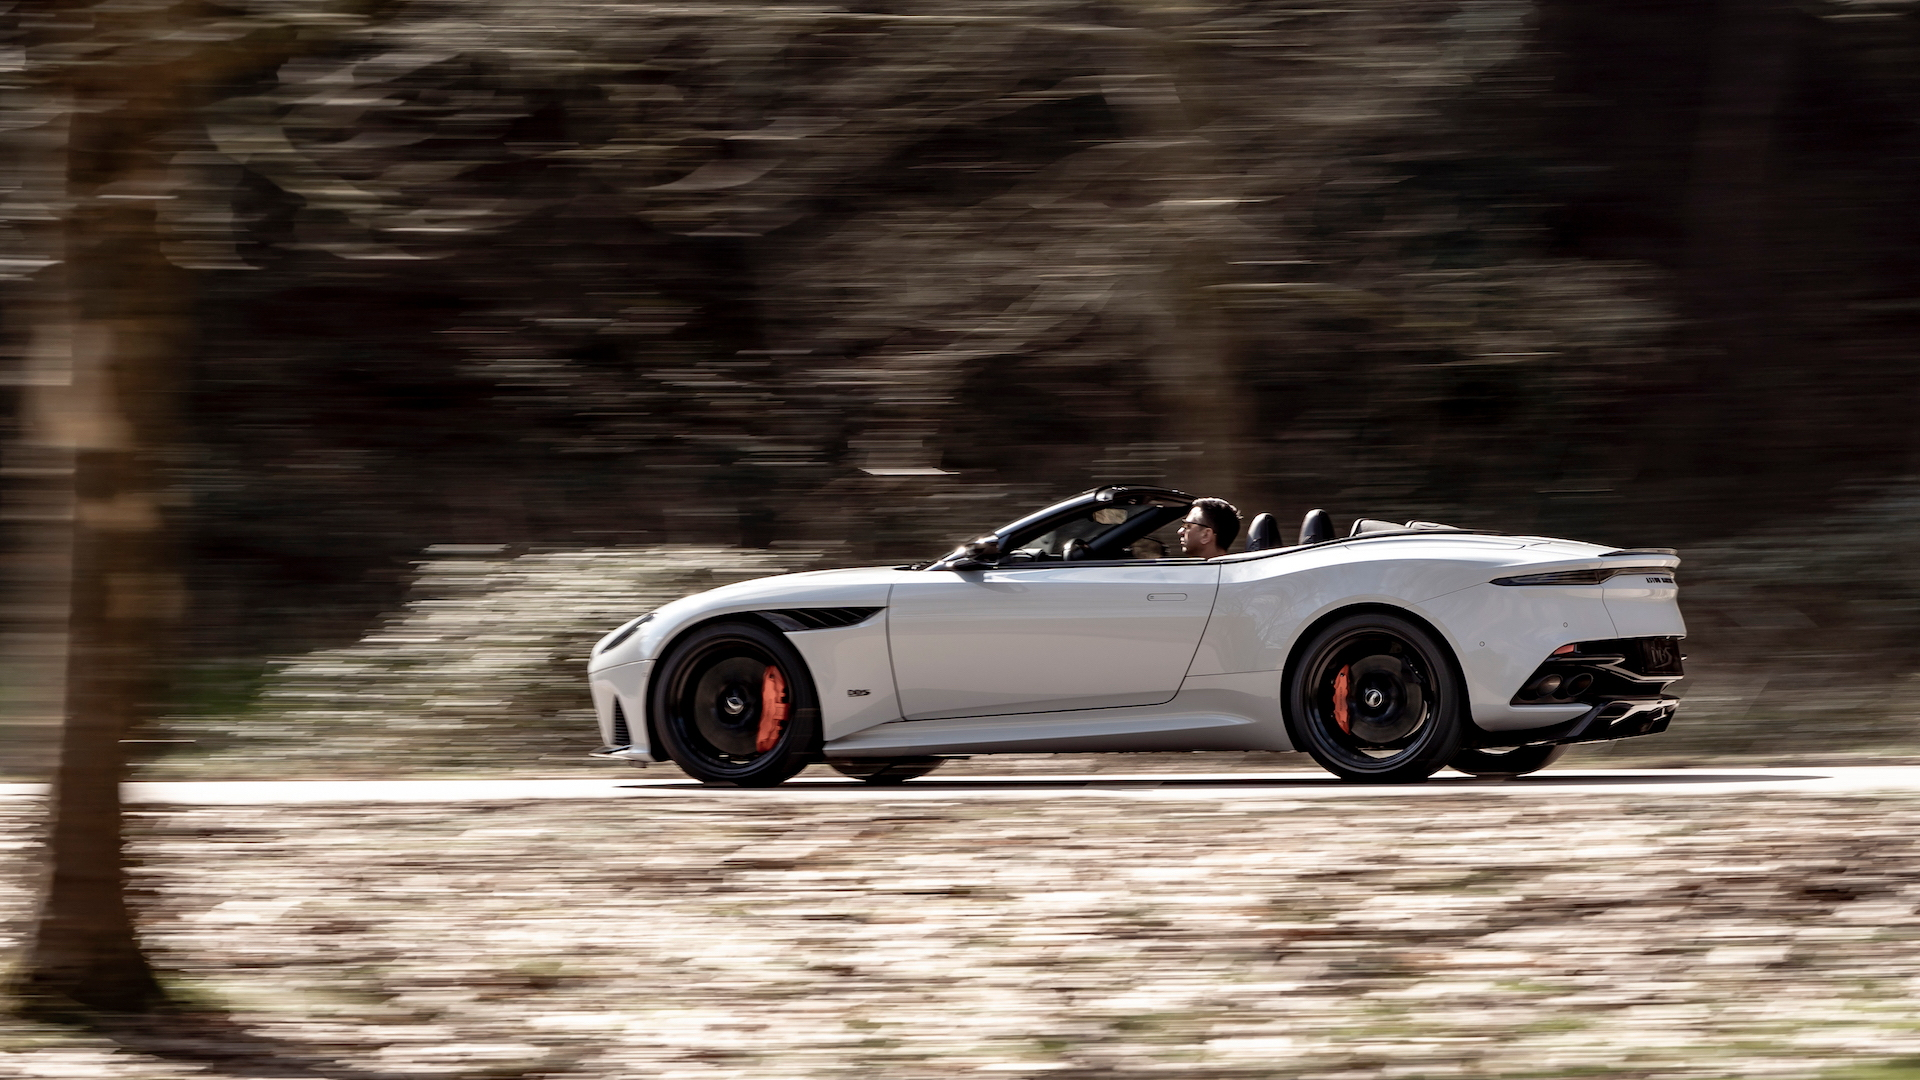 2020 Aston Martin Dbs Superleggera Volante Convertible Is A Symphony Of Speed And Style